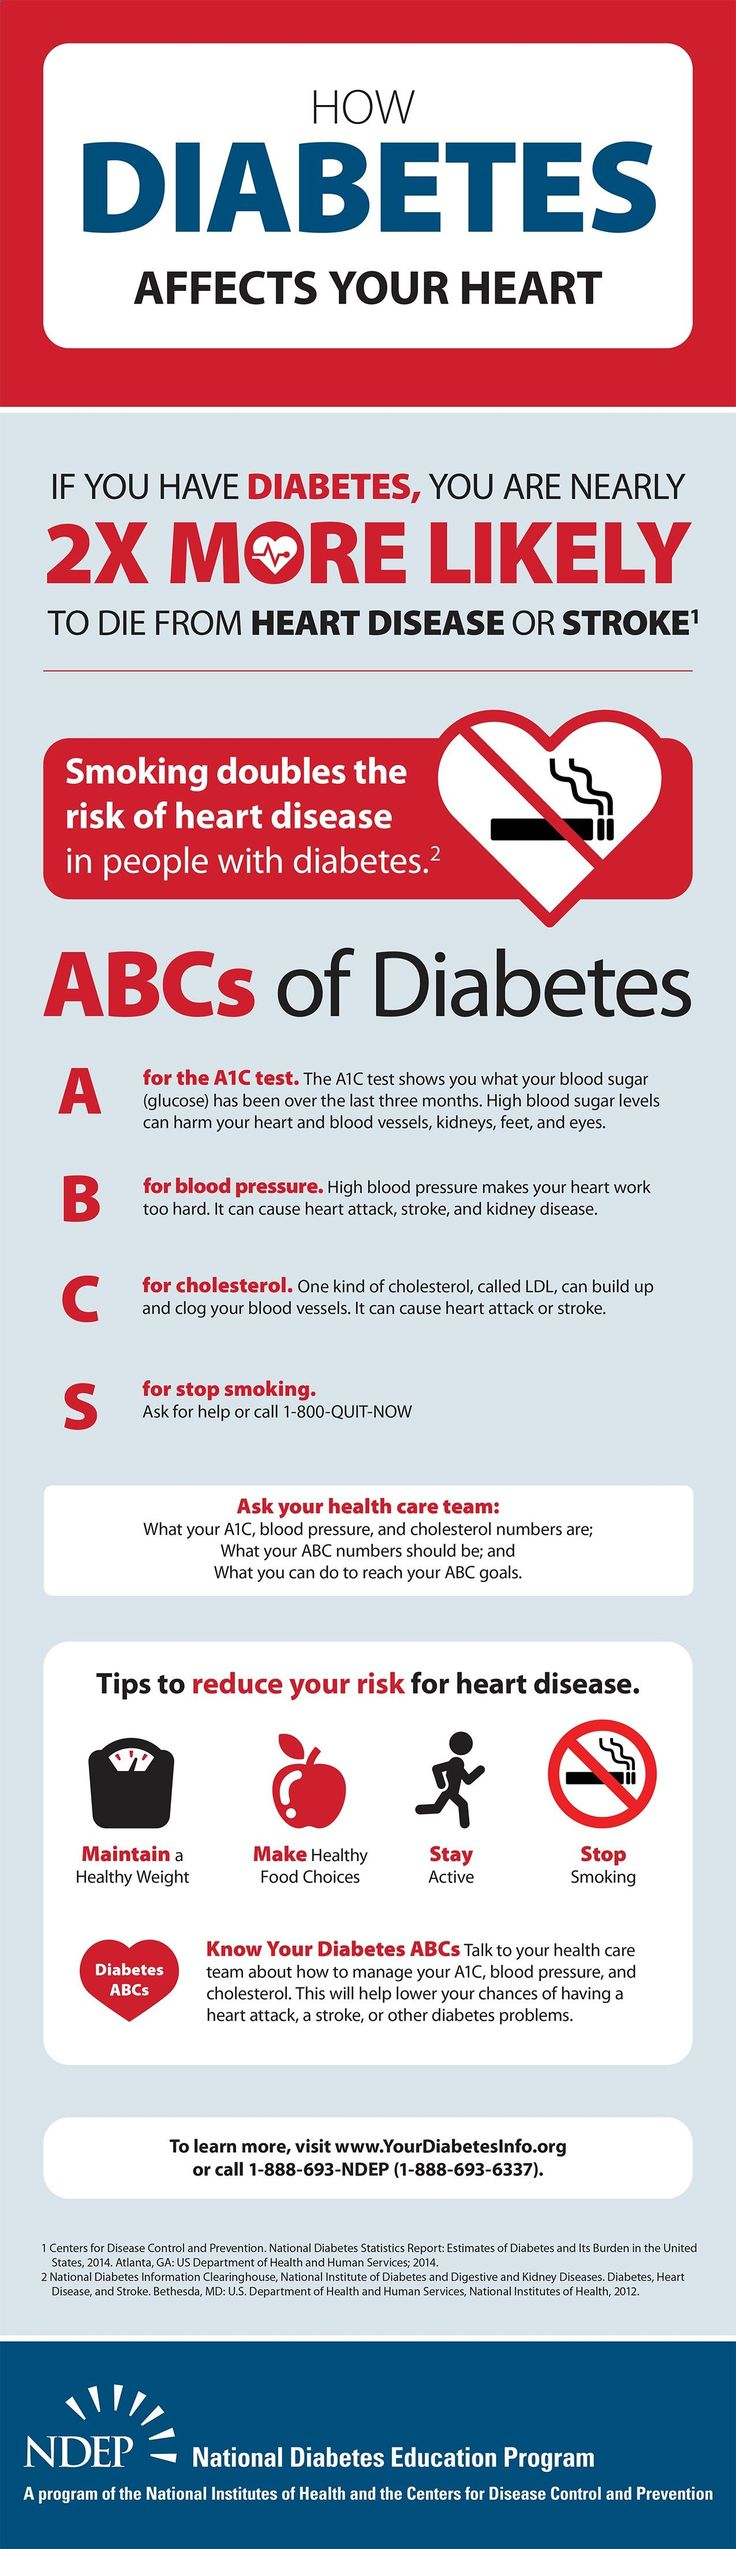 NDEP's How Diabetes Affects Your Heart infographic explains the ABCs of diabetes—the A1C test, Blood Pressure, Cholesterol and Stop Smoking— and how diabetes affects your heart (also available in Spanish).